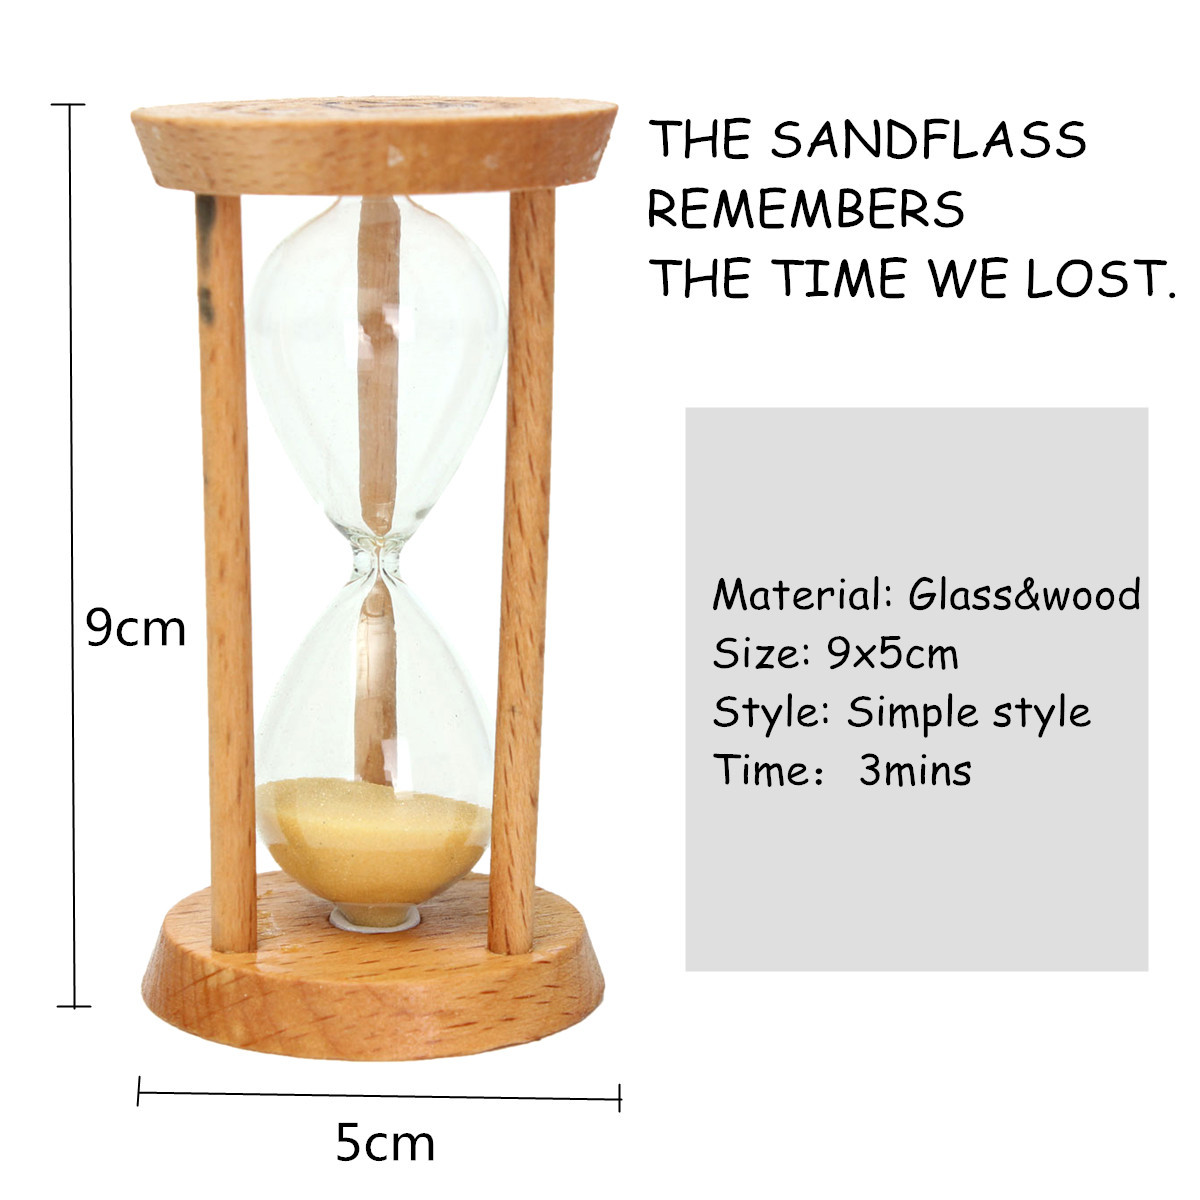 3 Minutes Wooden Sand Clock Sand Glass Hourglass Clock Home Decor Unique Gift Kitchen Timer